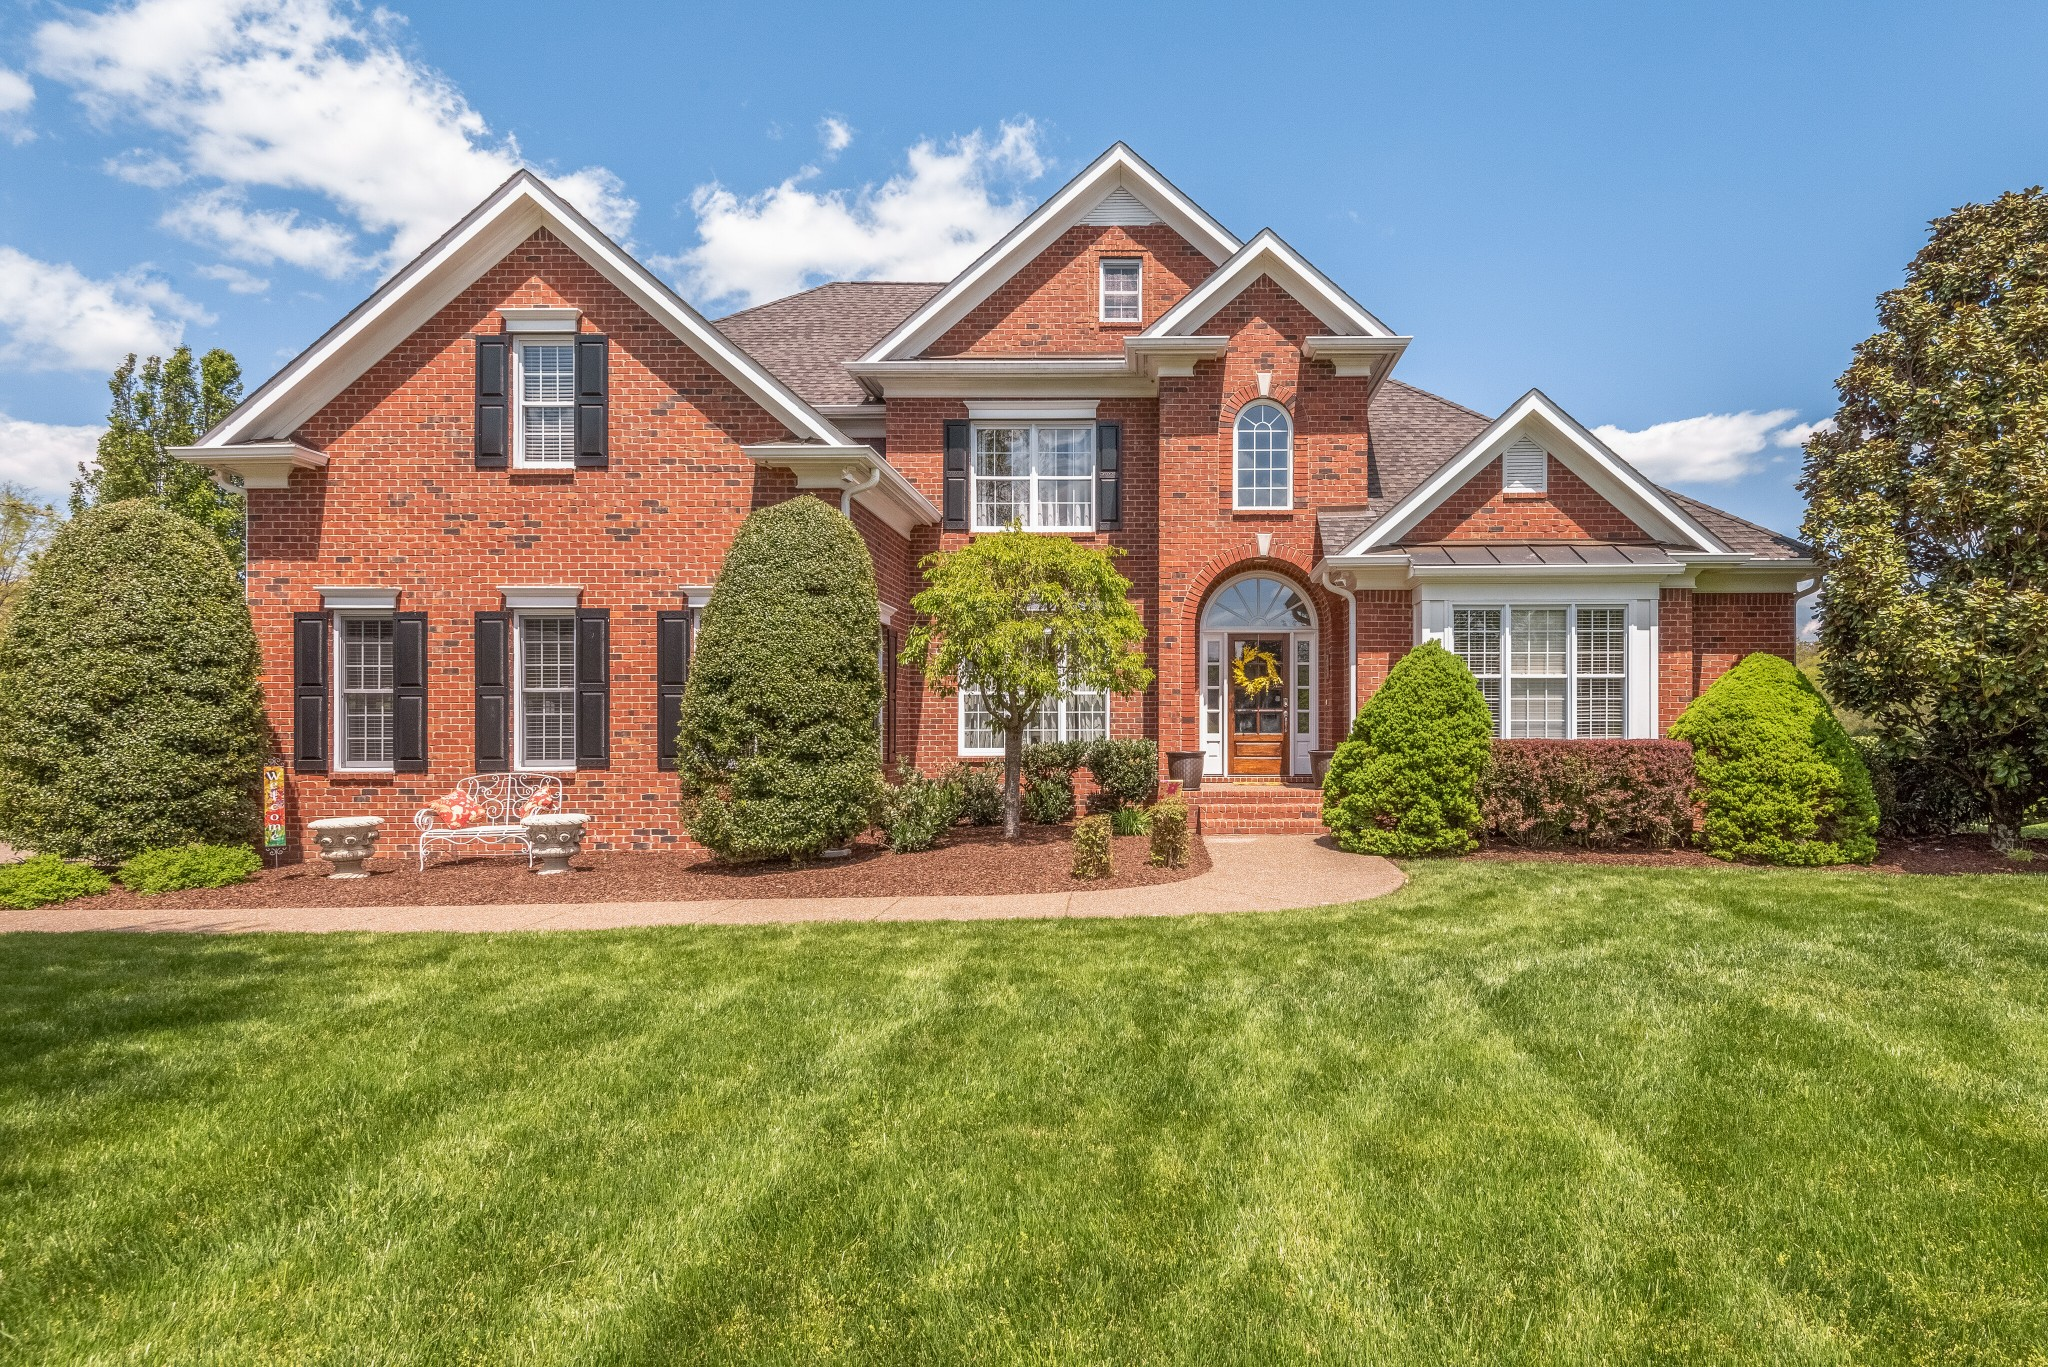 4314 Ambergate Ct Property Photo - Franklin, TN real estate listing